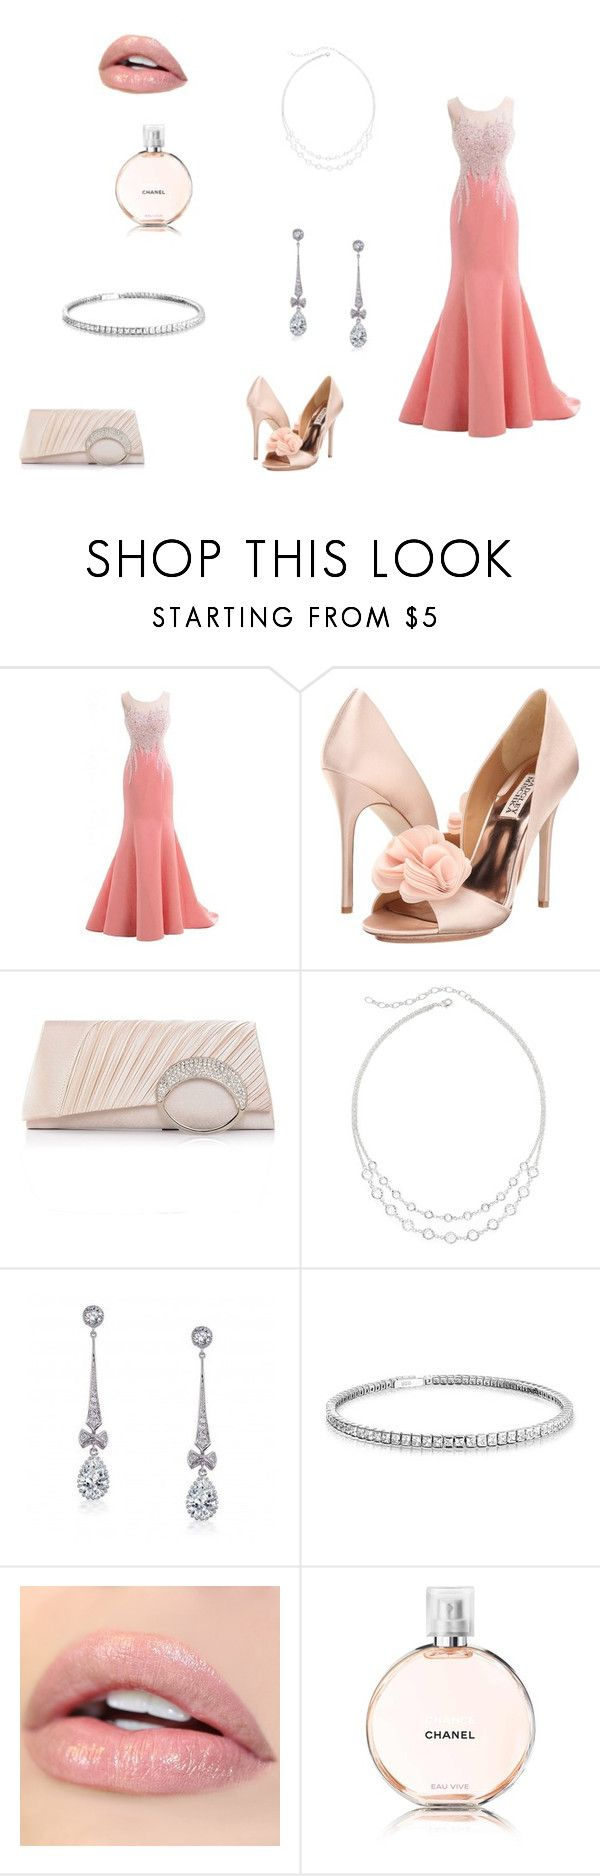 """""""Prom Night"""" by basher-977 ❤ liked on Polyvore featuring Badgley Mischka, Vieste Rosa, Bling Jewelry, Chanel and polyvorecontest"""